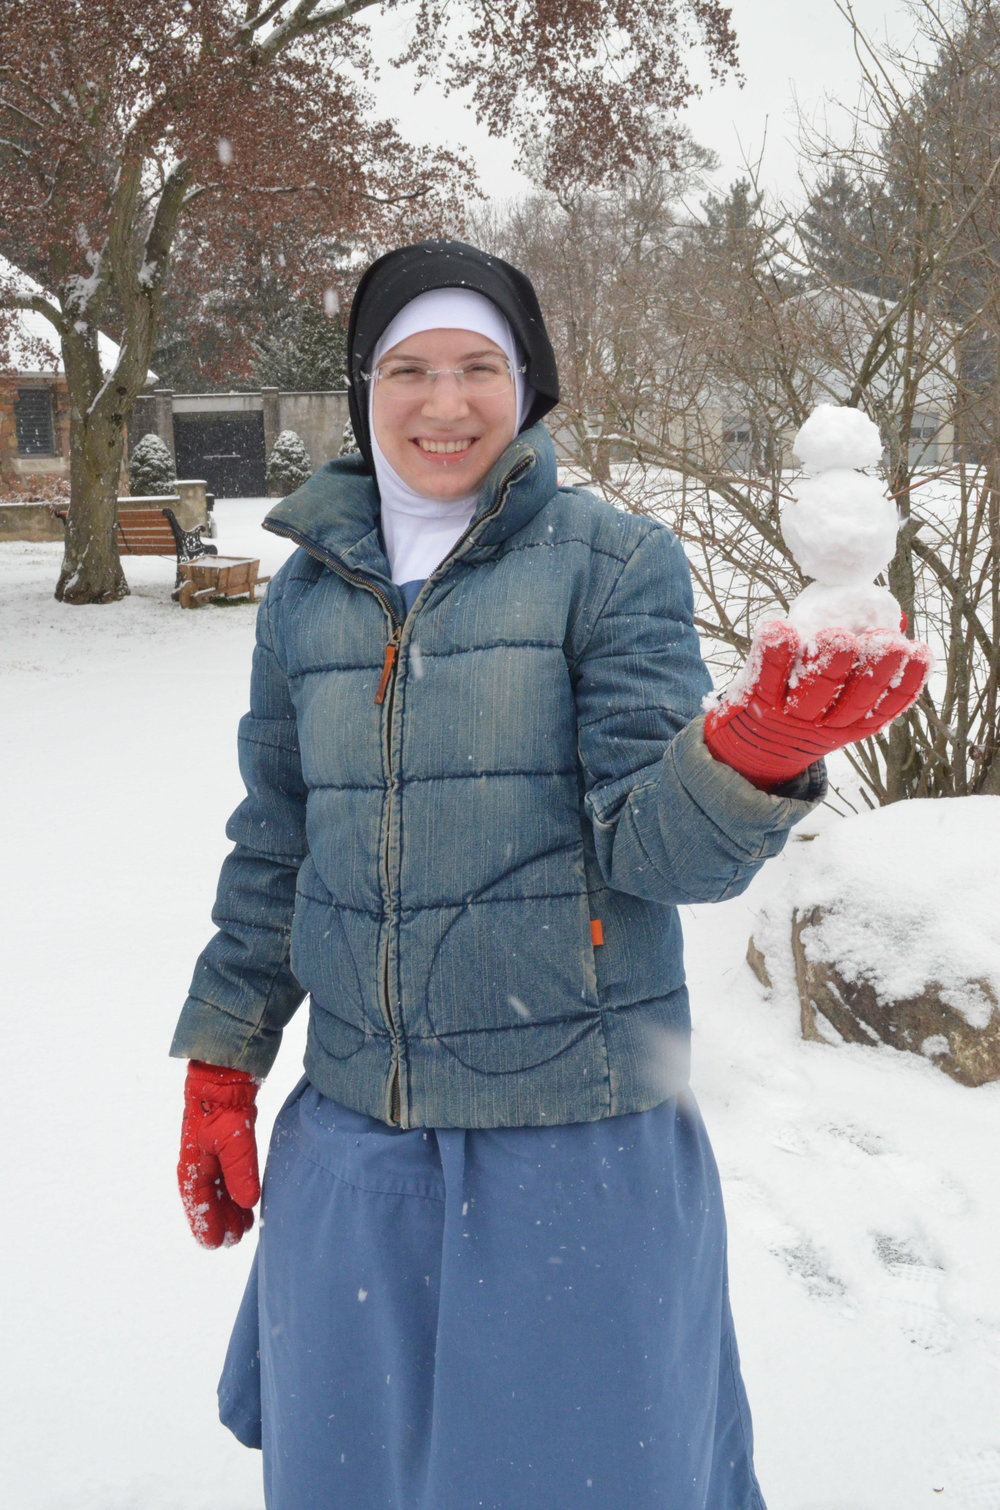 Sr. Mary Veronica with her miniature snowman.